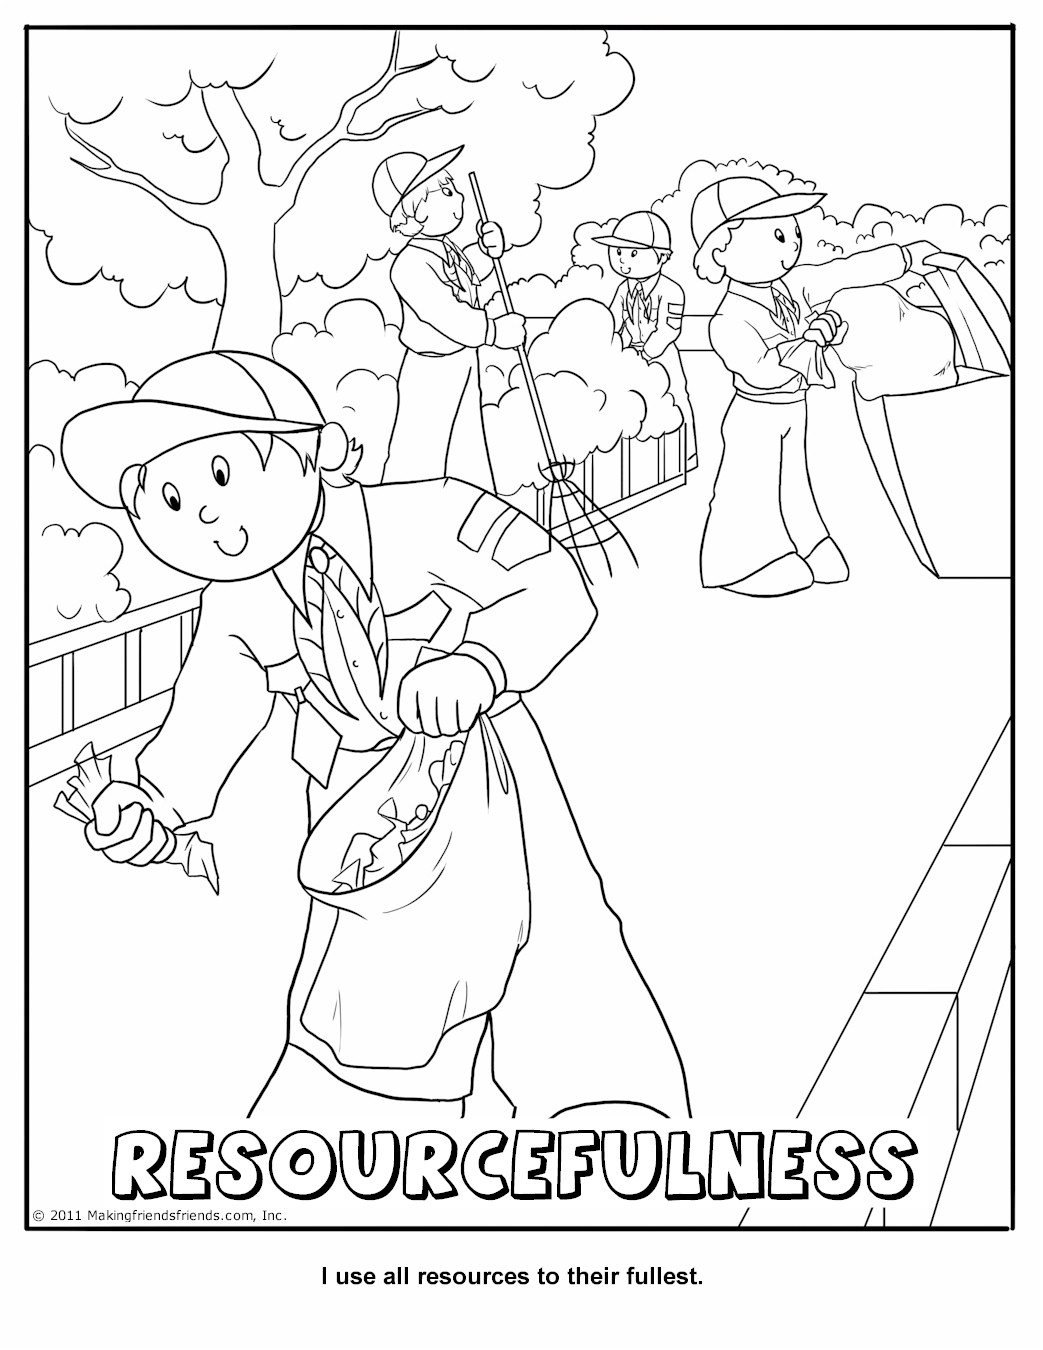 cub scout coloring pages free - photo#16